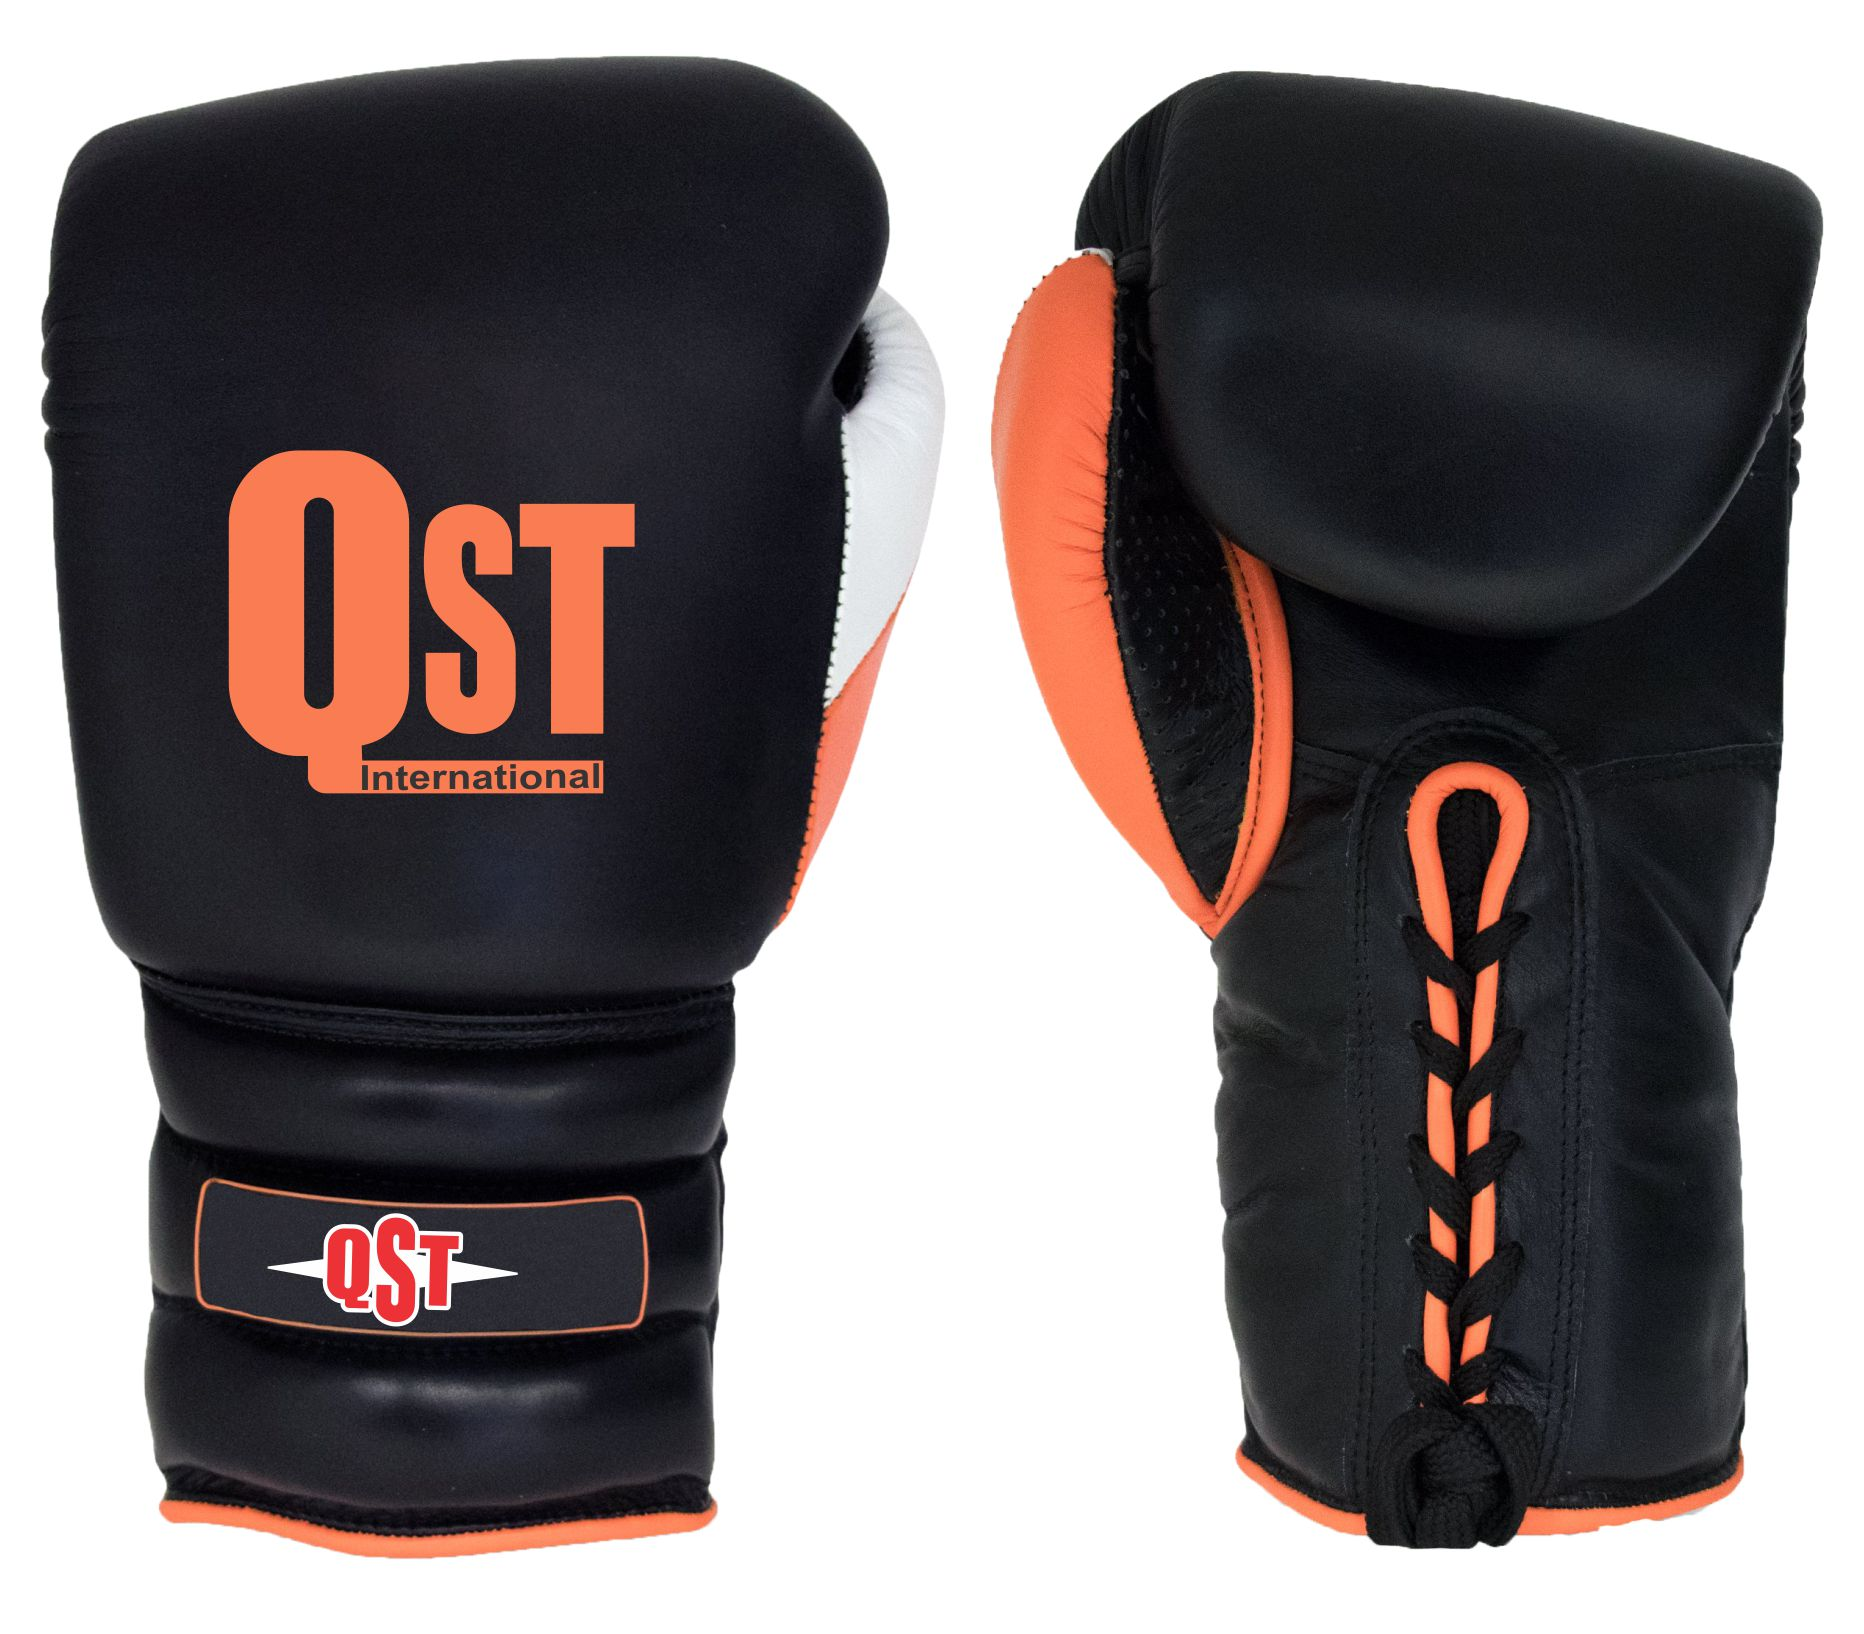 Lace up Boxing Gloves - PRG-3254